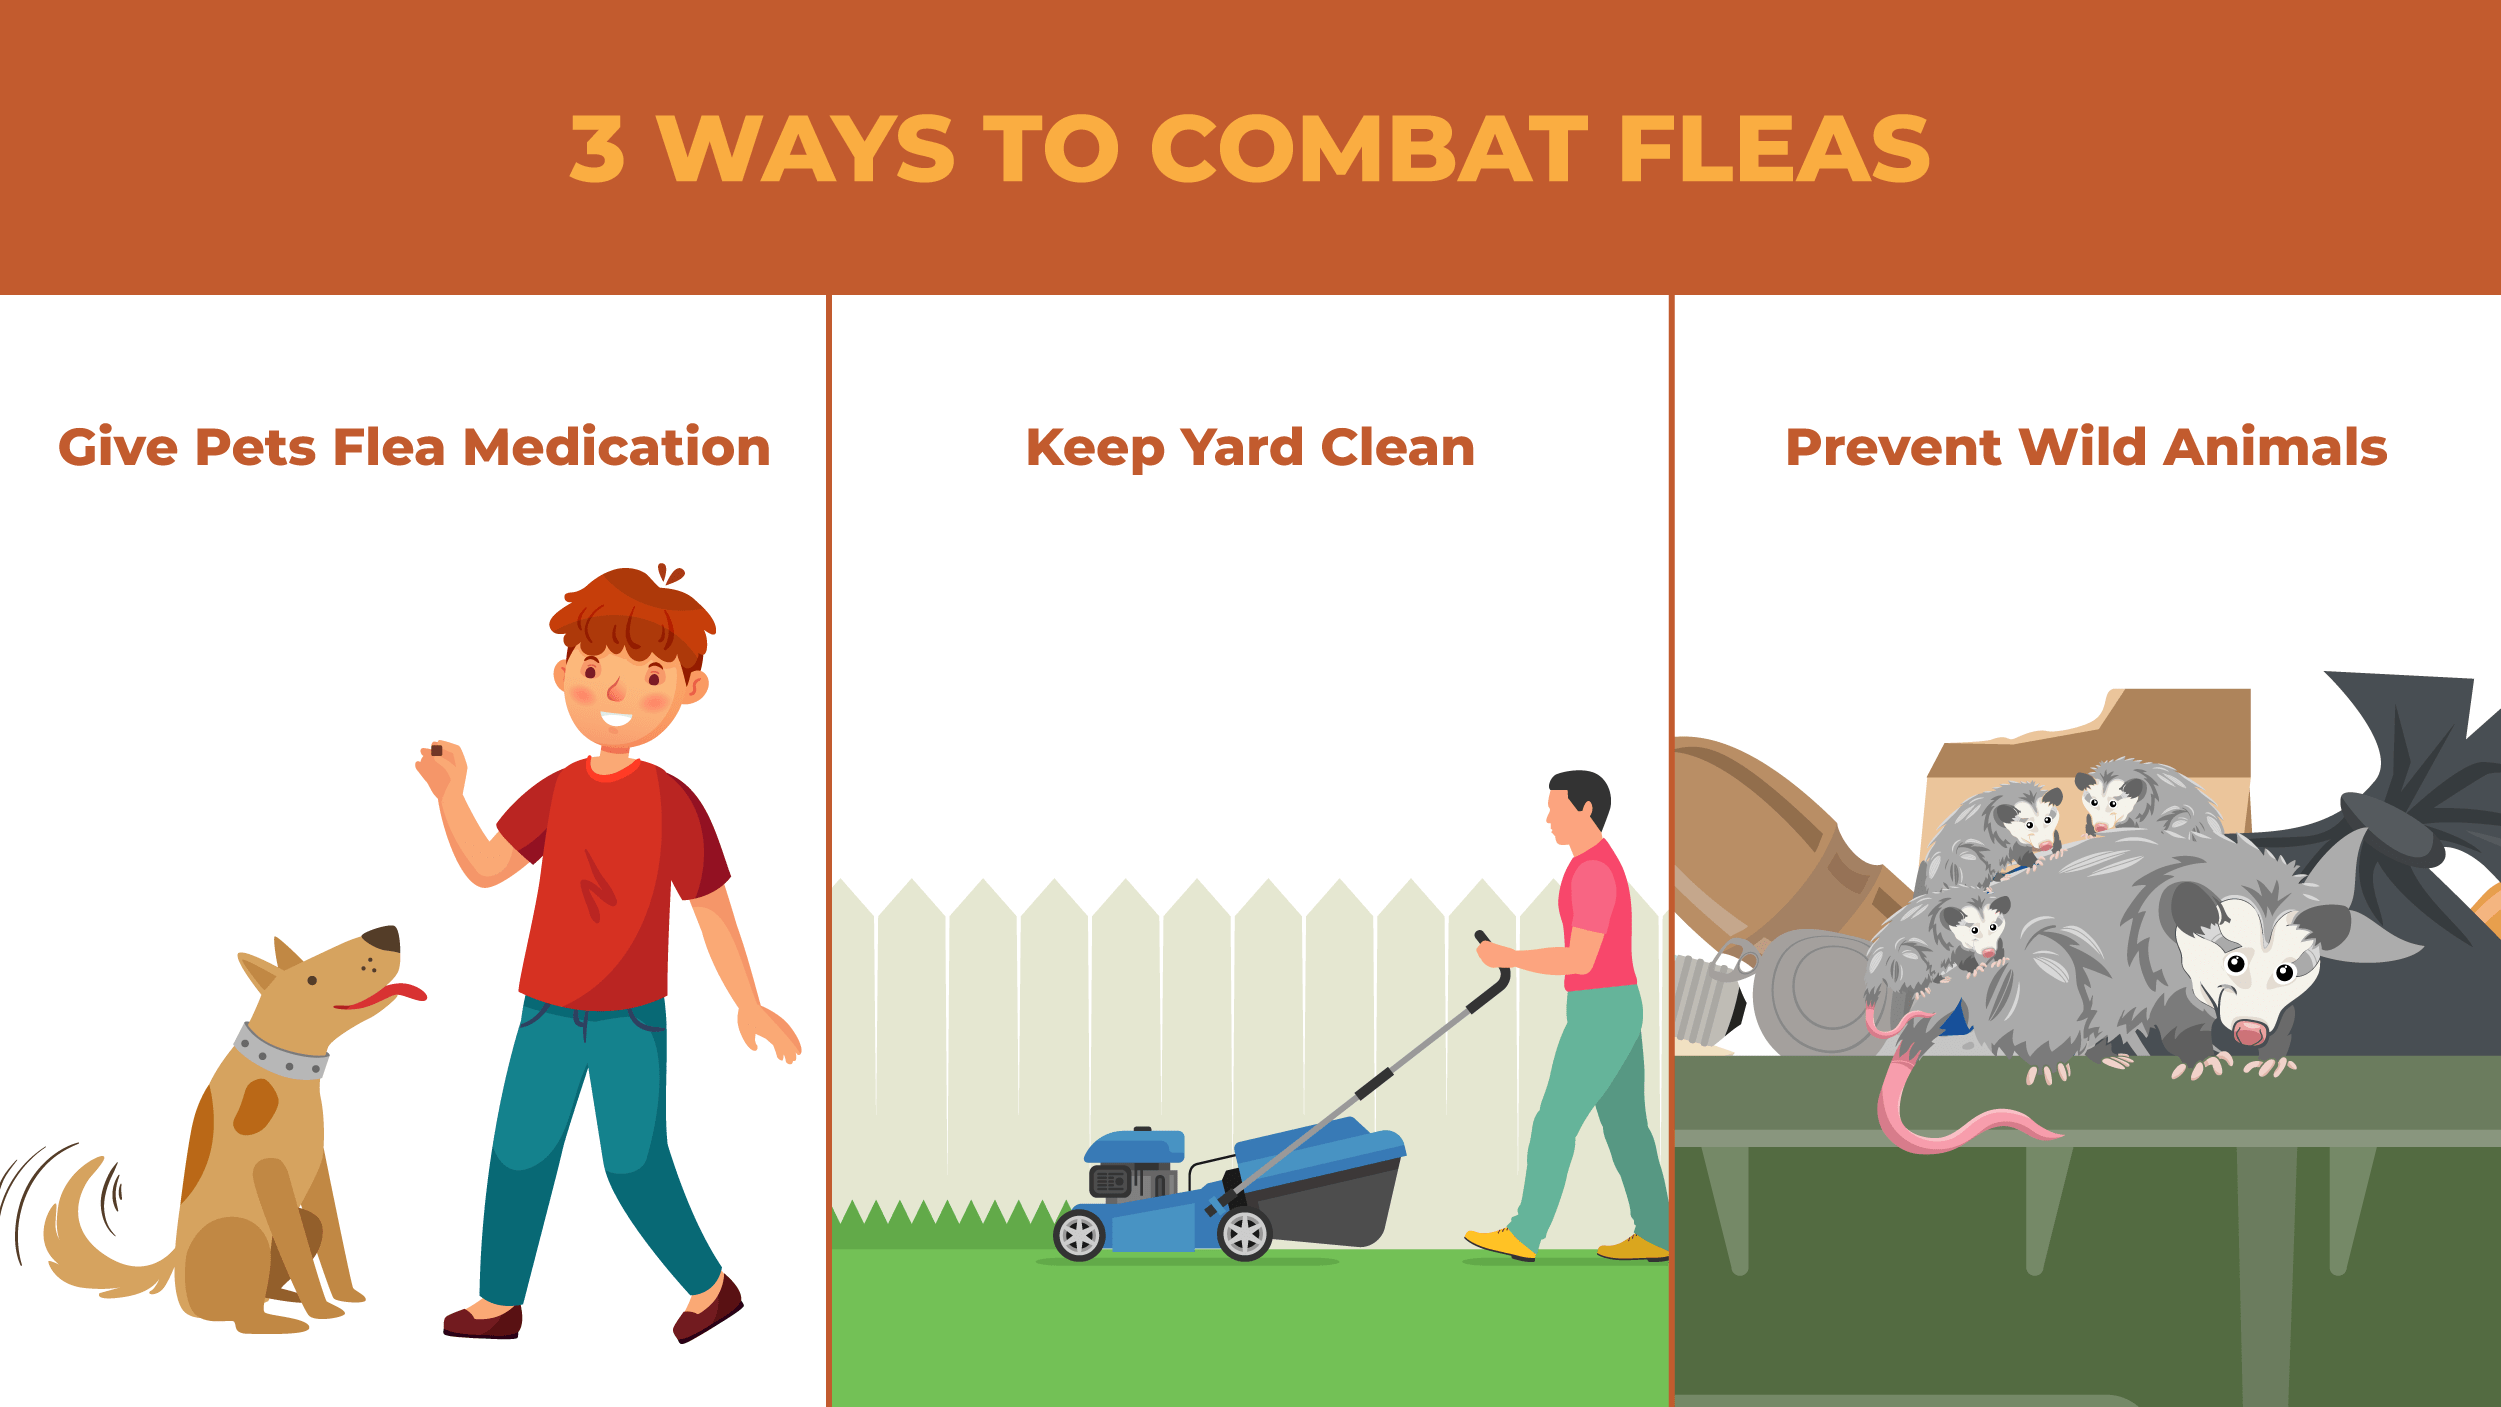 Triptych illustrations of three different ways to combat fleas, including giving your pets anti-flea meds, keeping your lawn clean, and preventing wild animals from coming near your property.